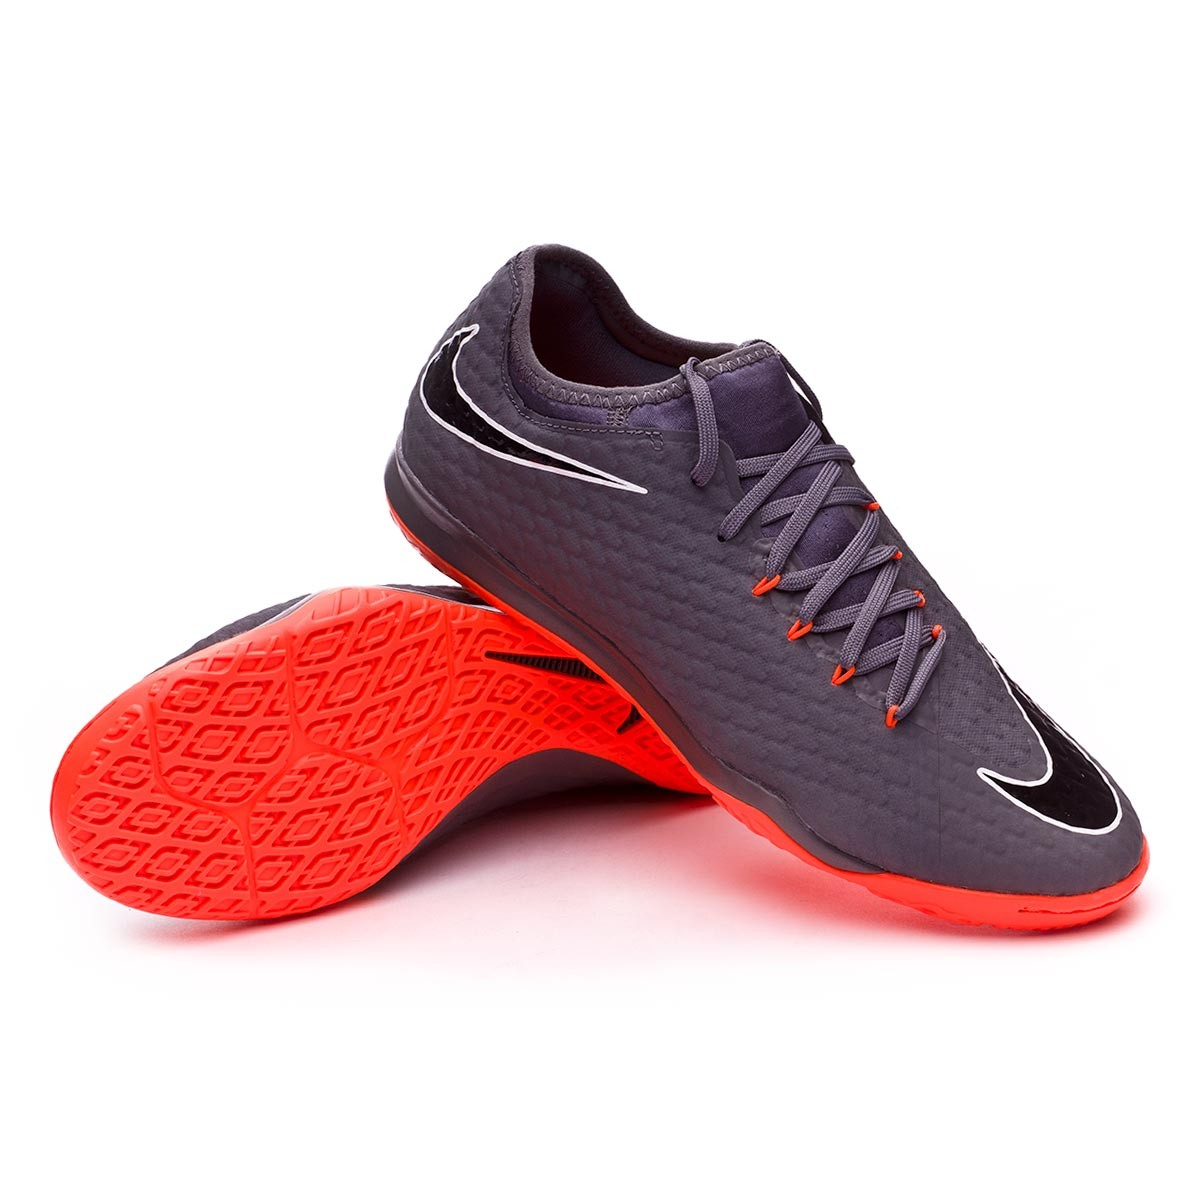 official photos 6c985 272b5 Nike Hypervenom Zoom PhantomX III Pro IC Futsal Boot